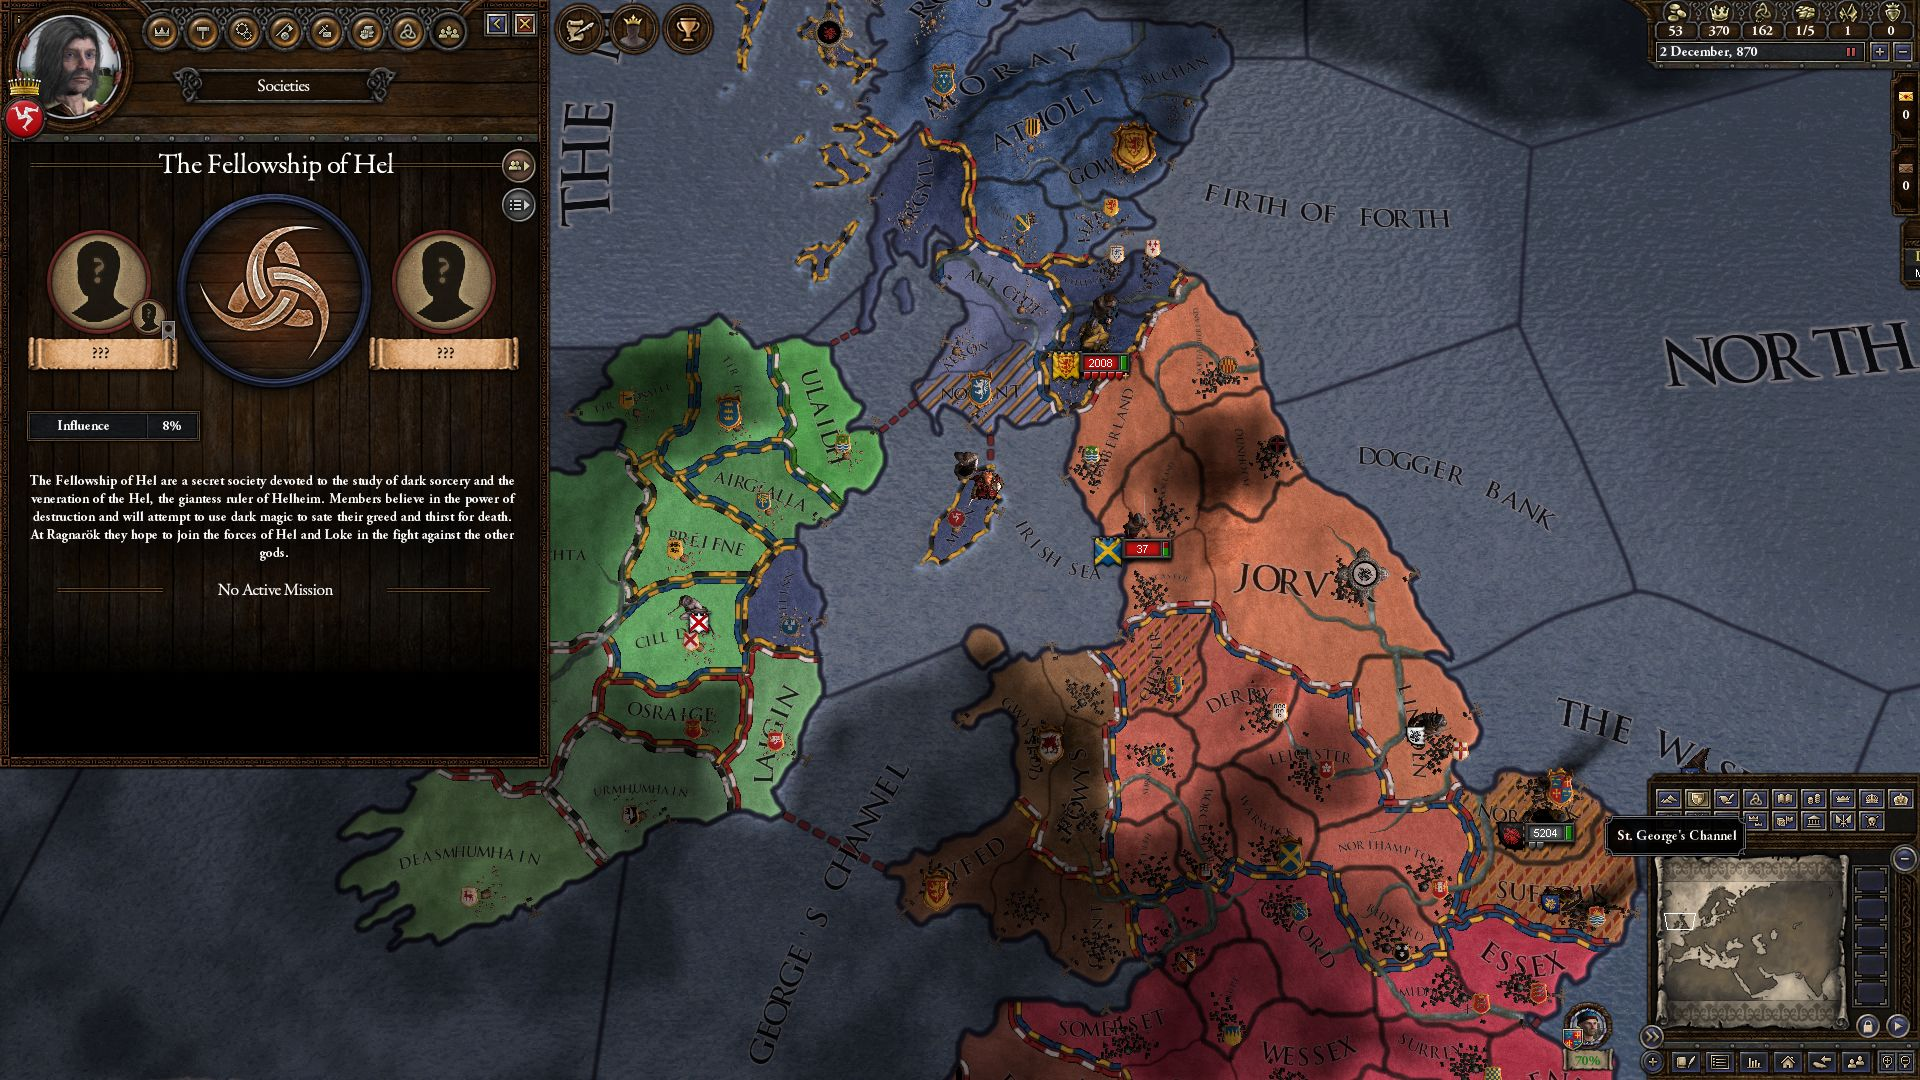 Crusader Kings 3 will 'probably' happen, says outgoing Paradox CEO